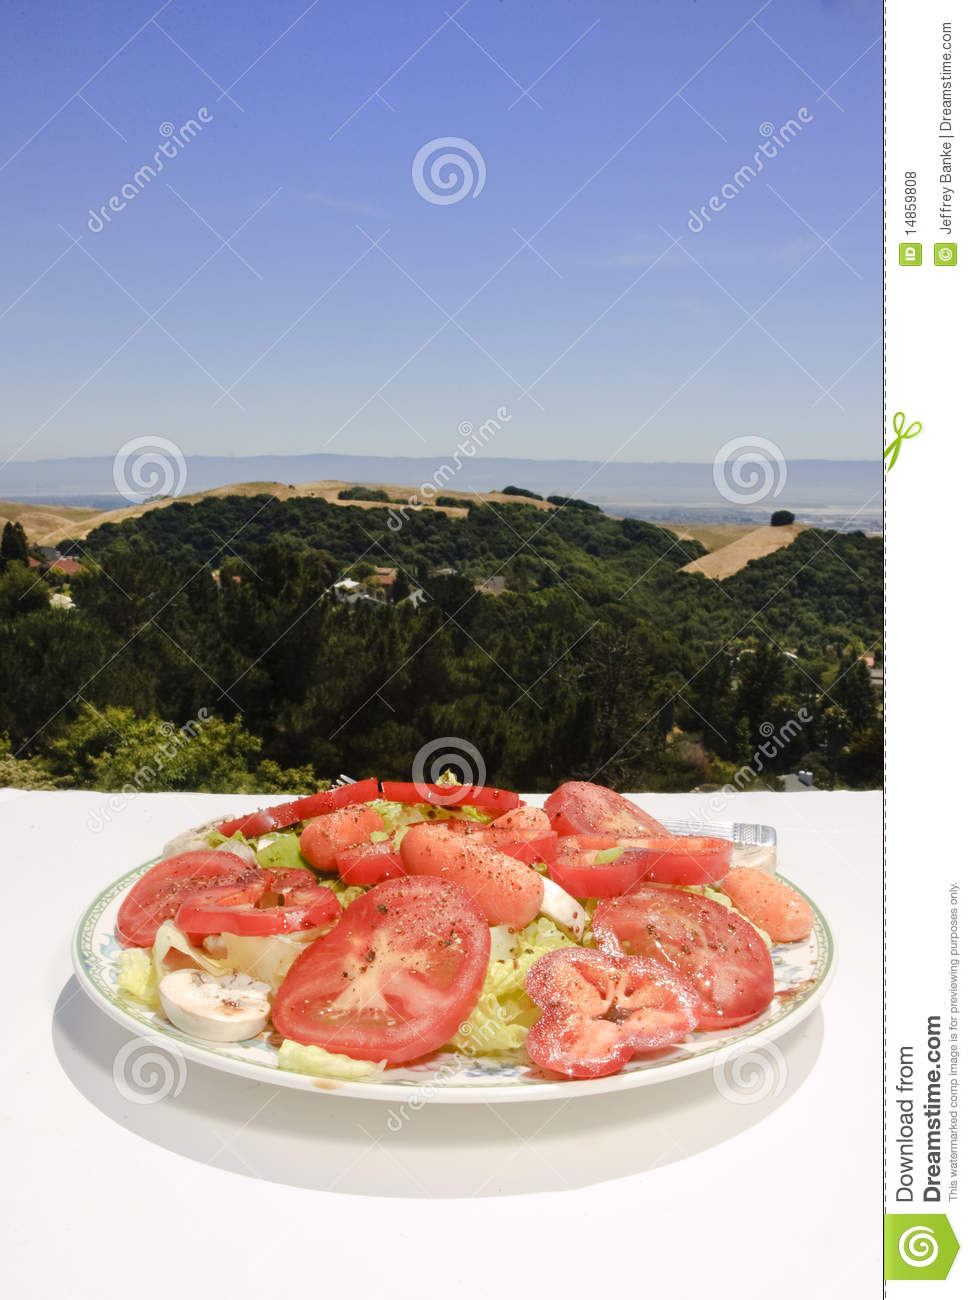 Download Salad in the sun stock photo. Image of full, health, delicious - 14859808